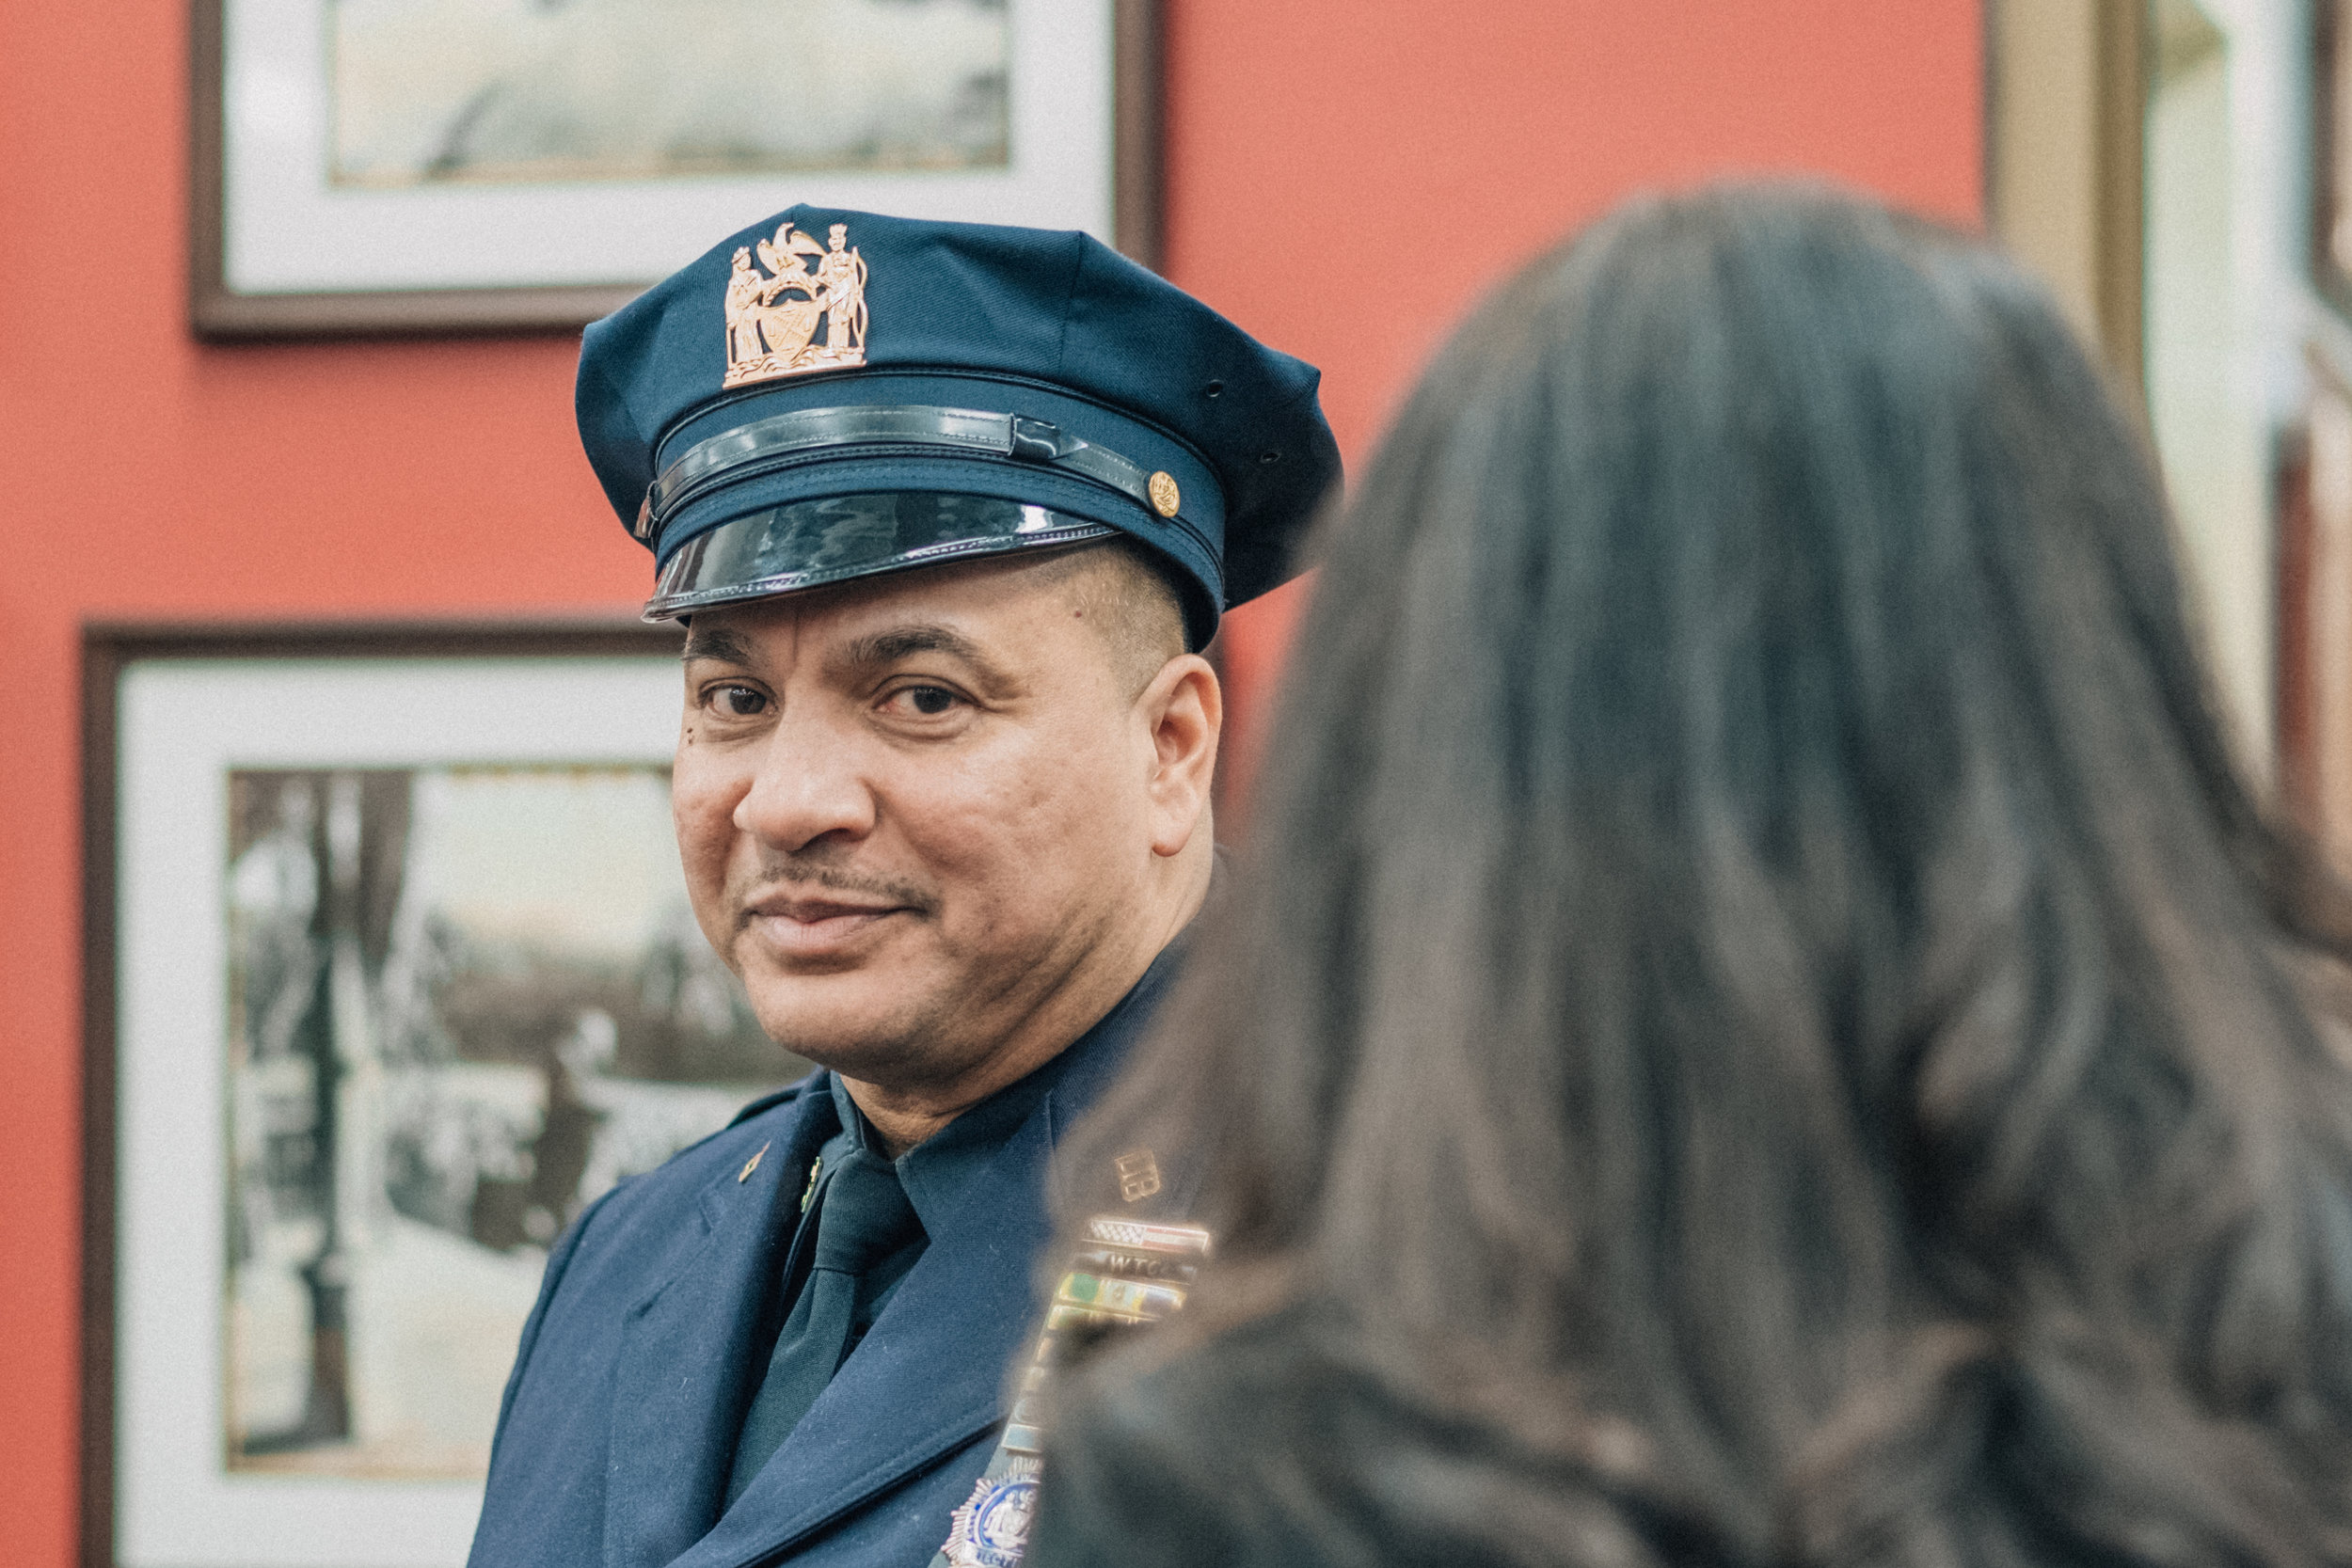 NYPD_Promotions-60.jpg